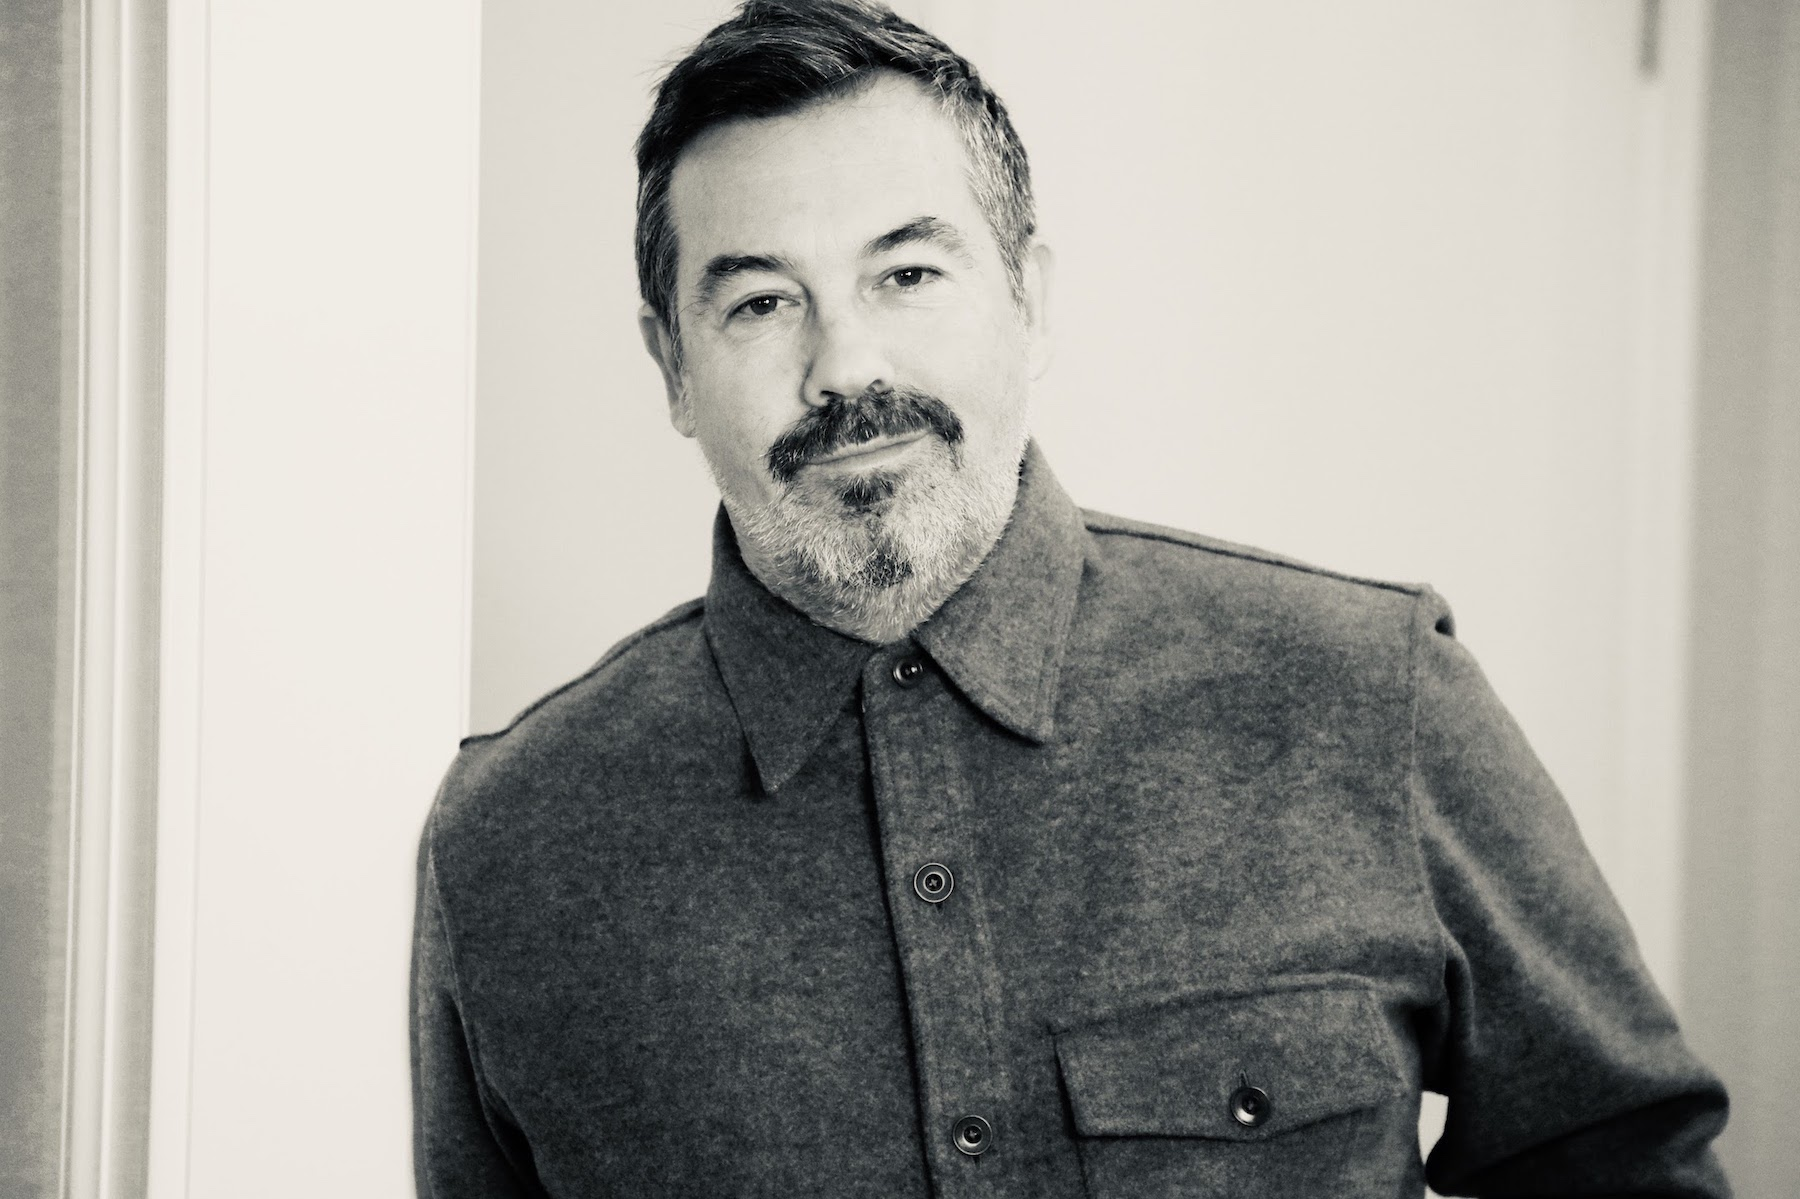 Duncan Sheik (Photo credit: Myrna Suarez; image provided by Missing Piece Group)